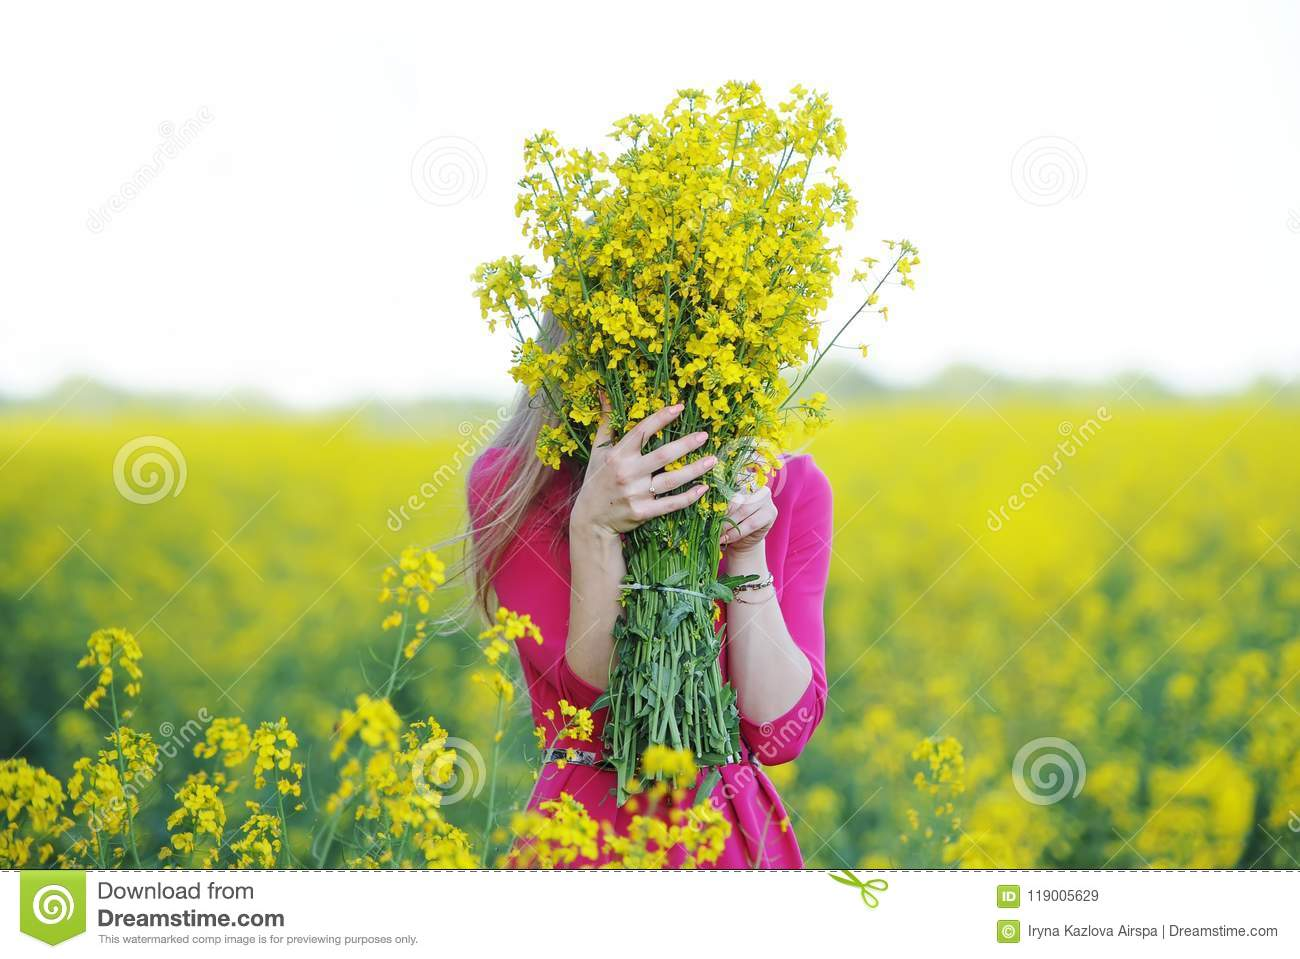 Young woman in a red dress has hidden a face behind a bouquet of yellow colors